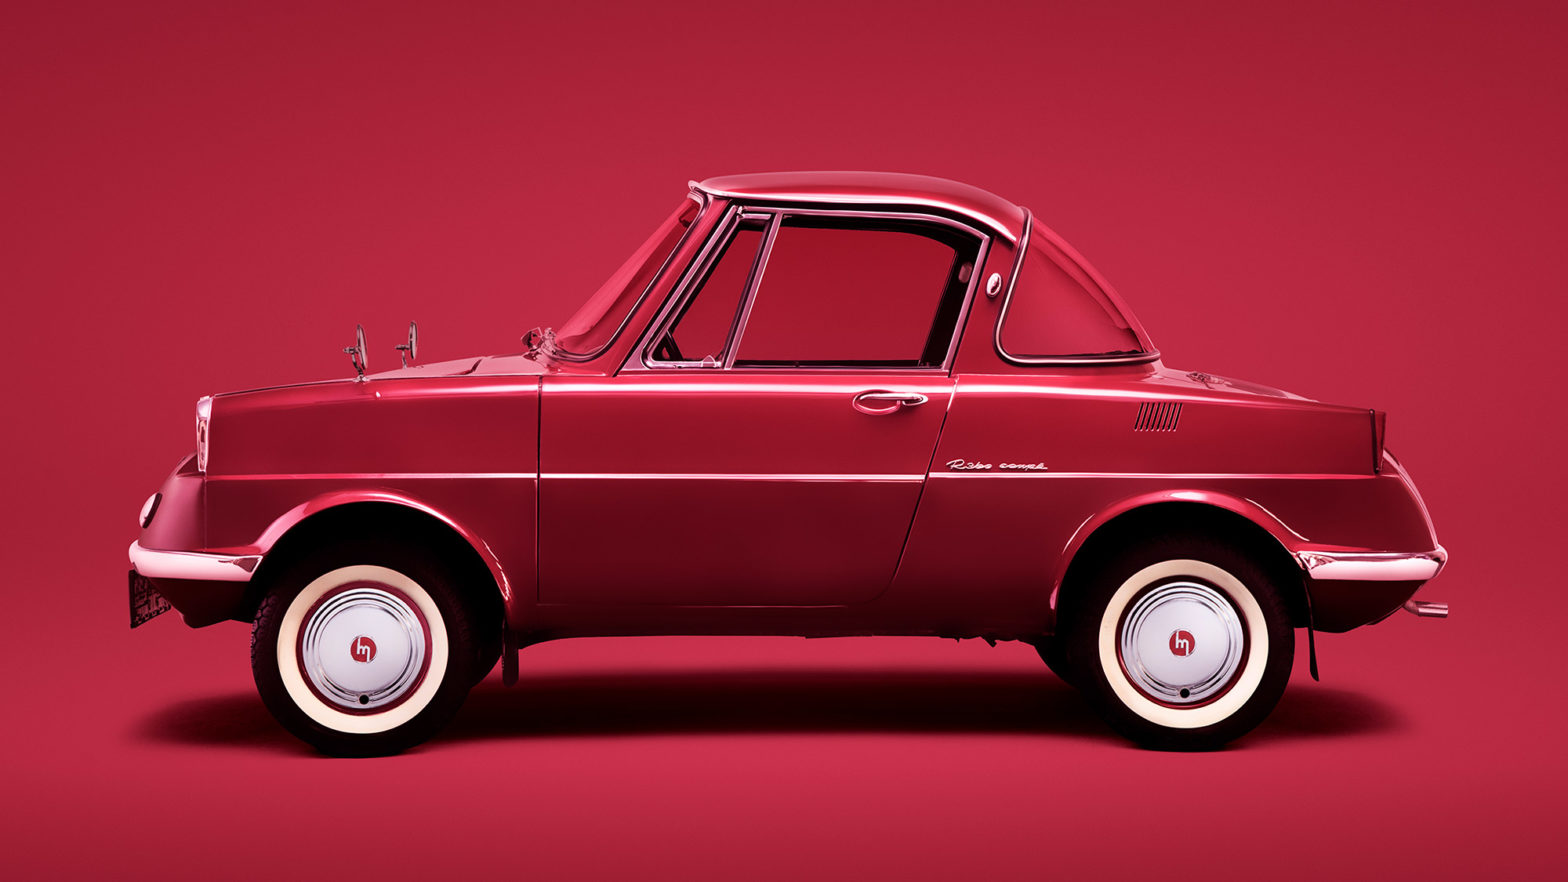 1960 Mazda R360 Microcar Coupe